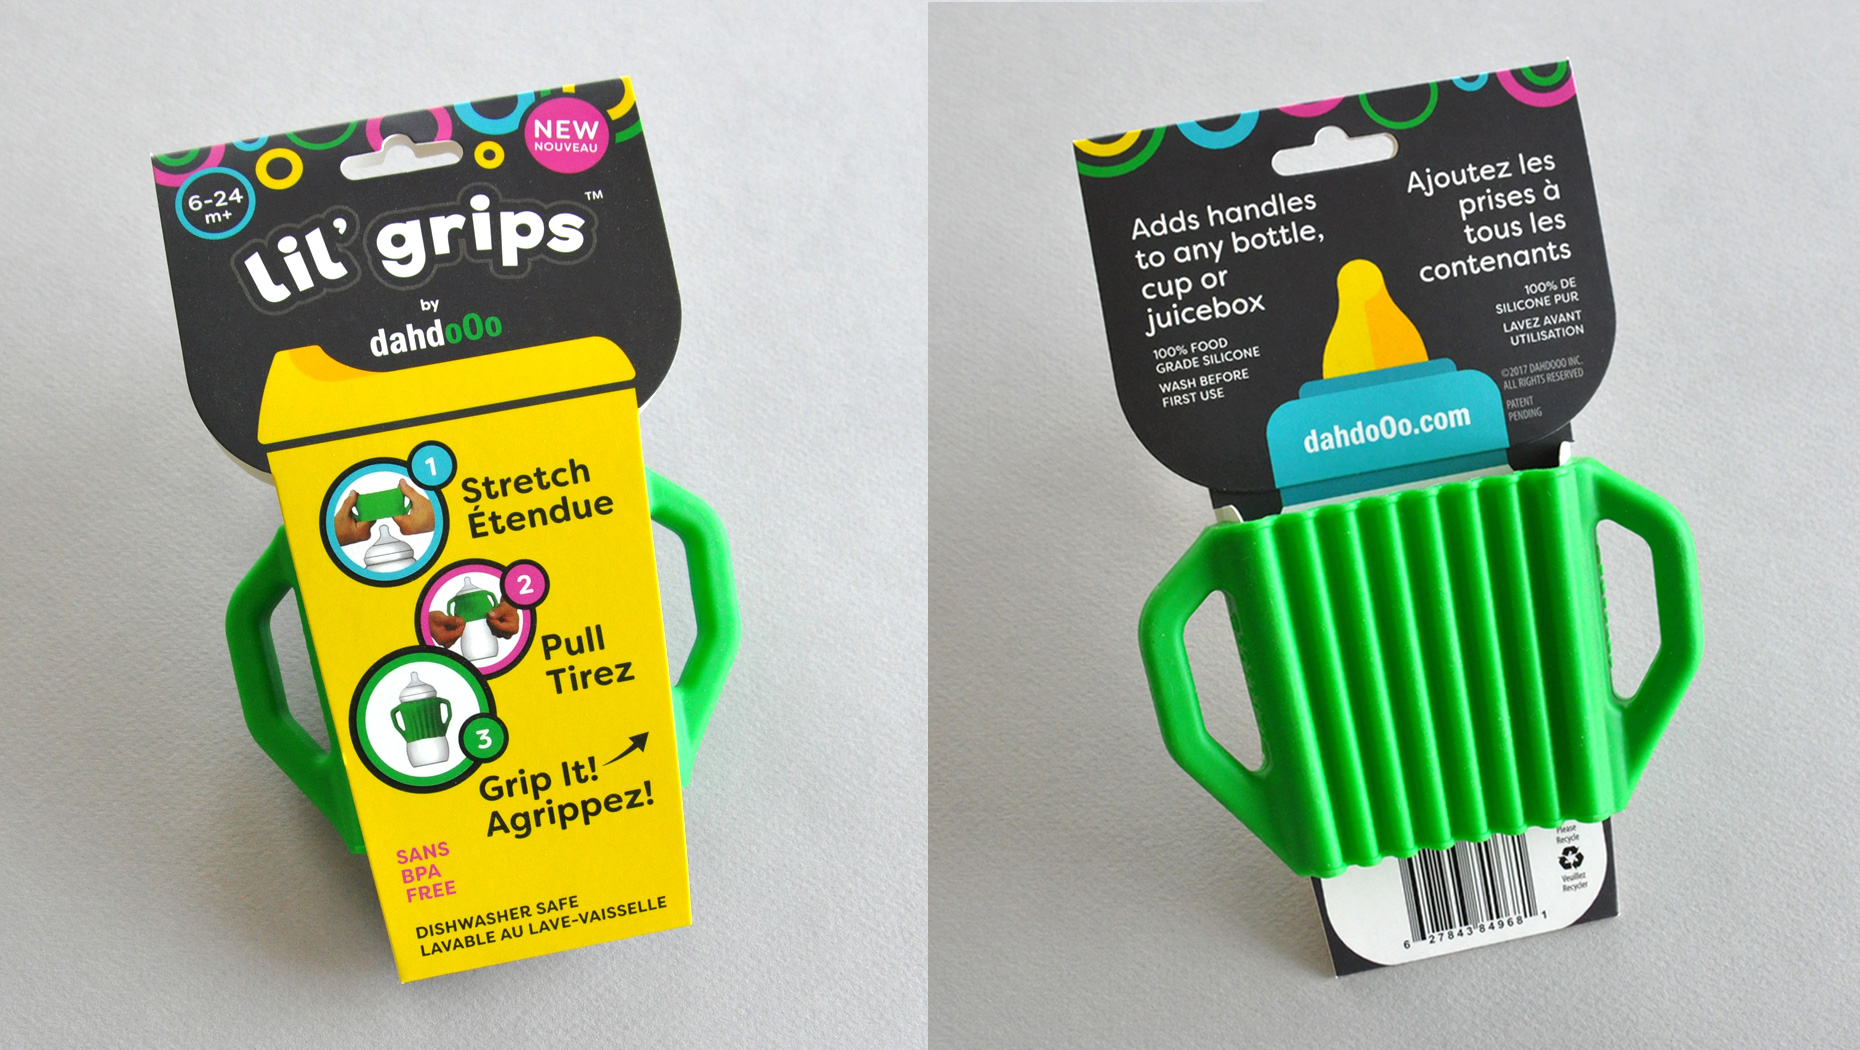 Lil' grips packaging design front and back